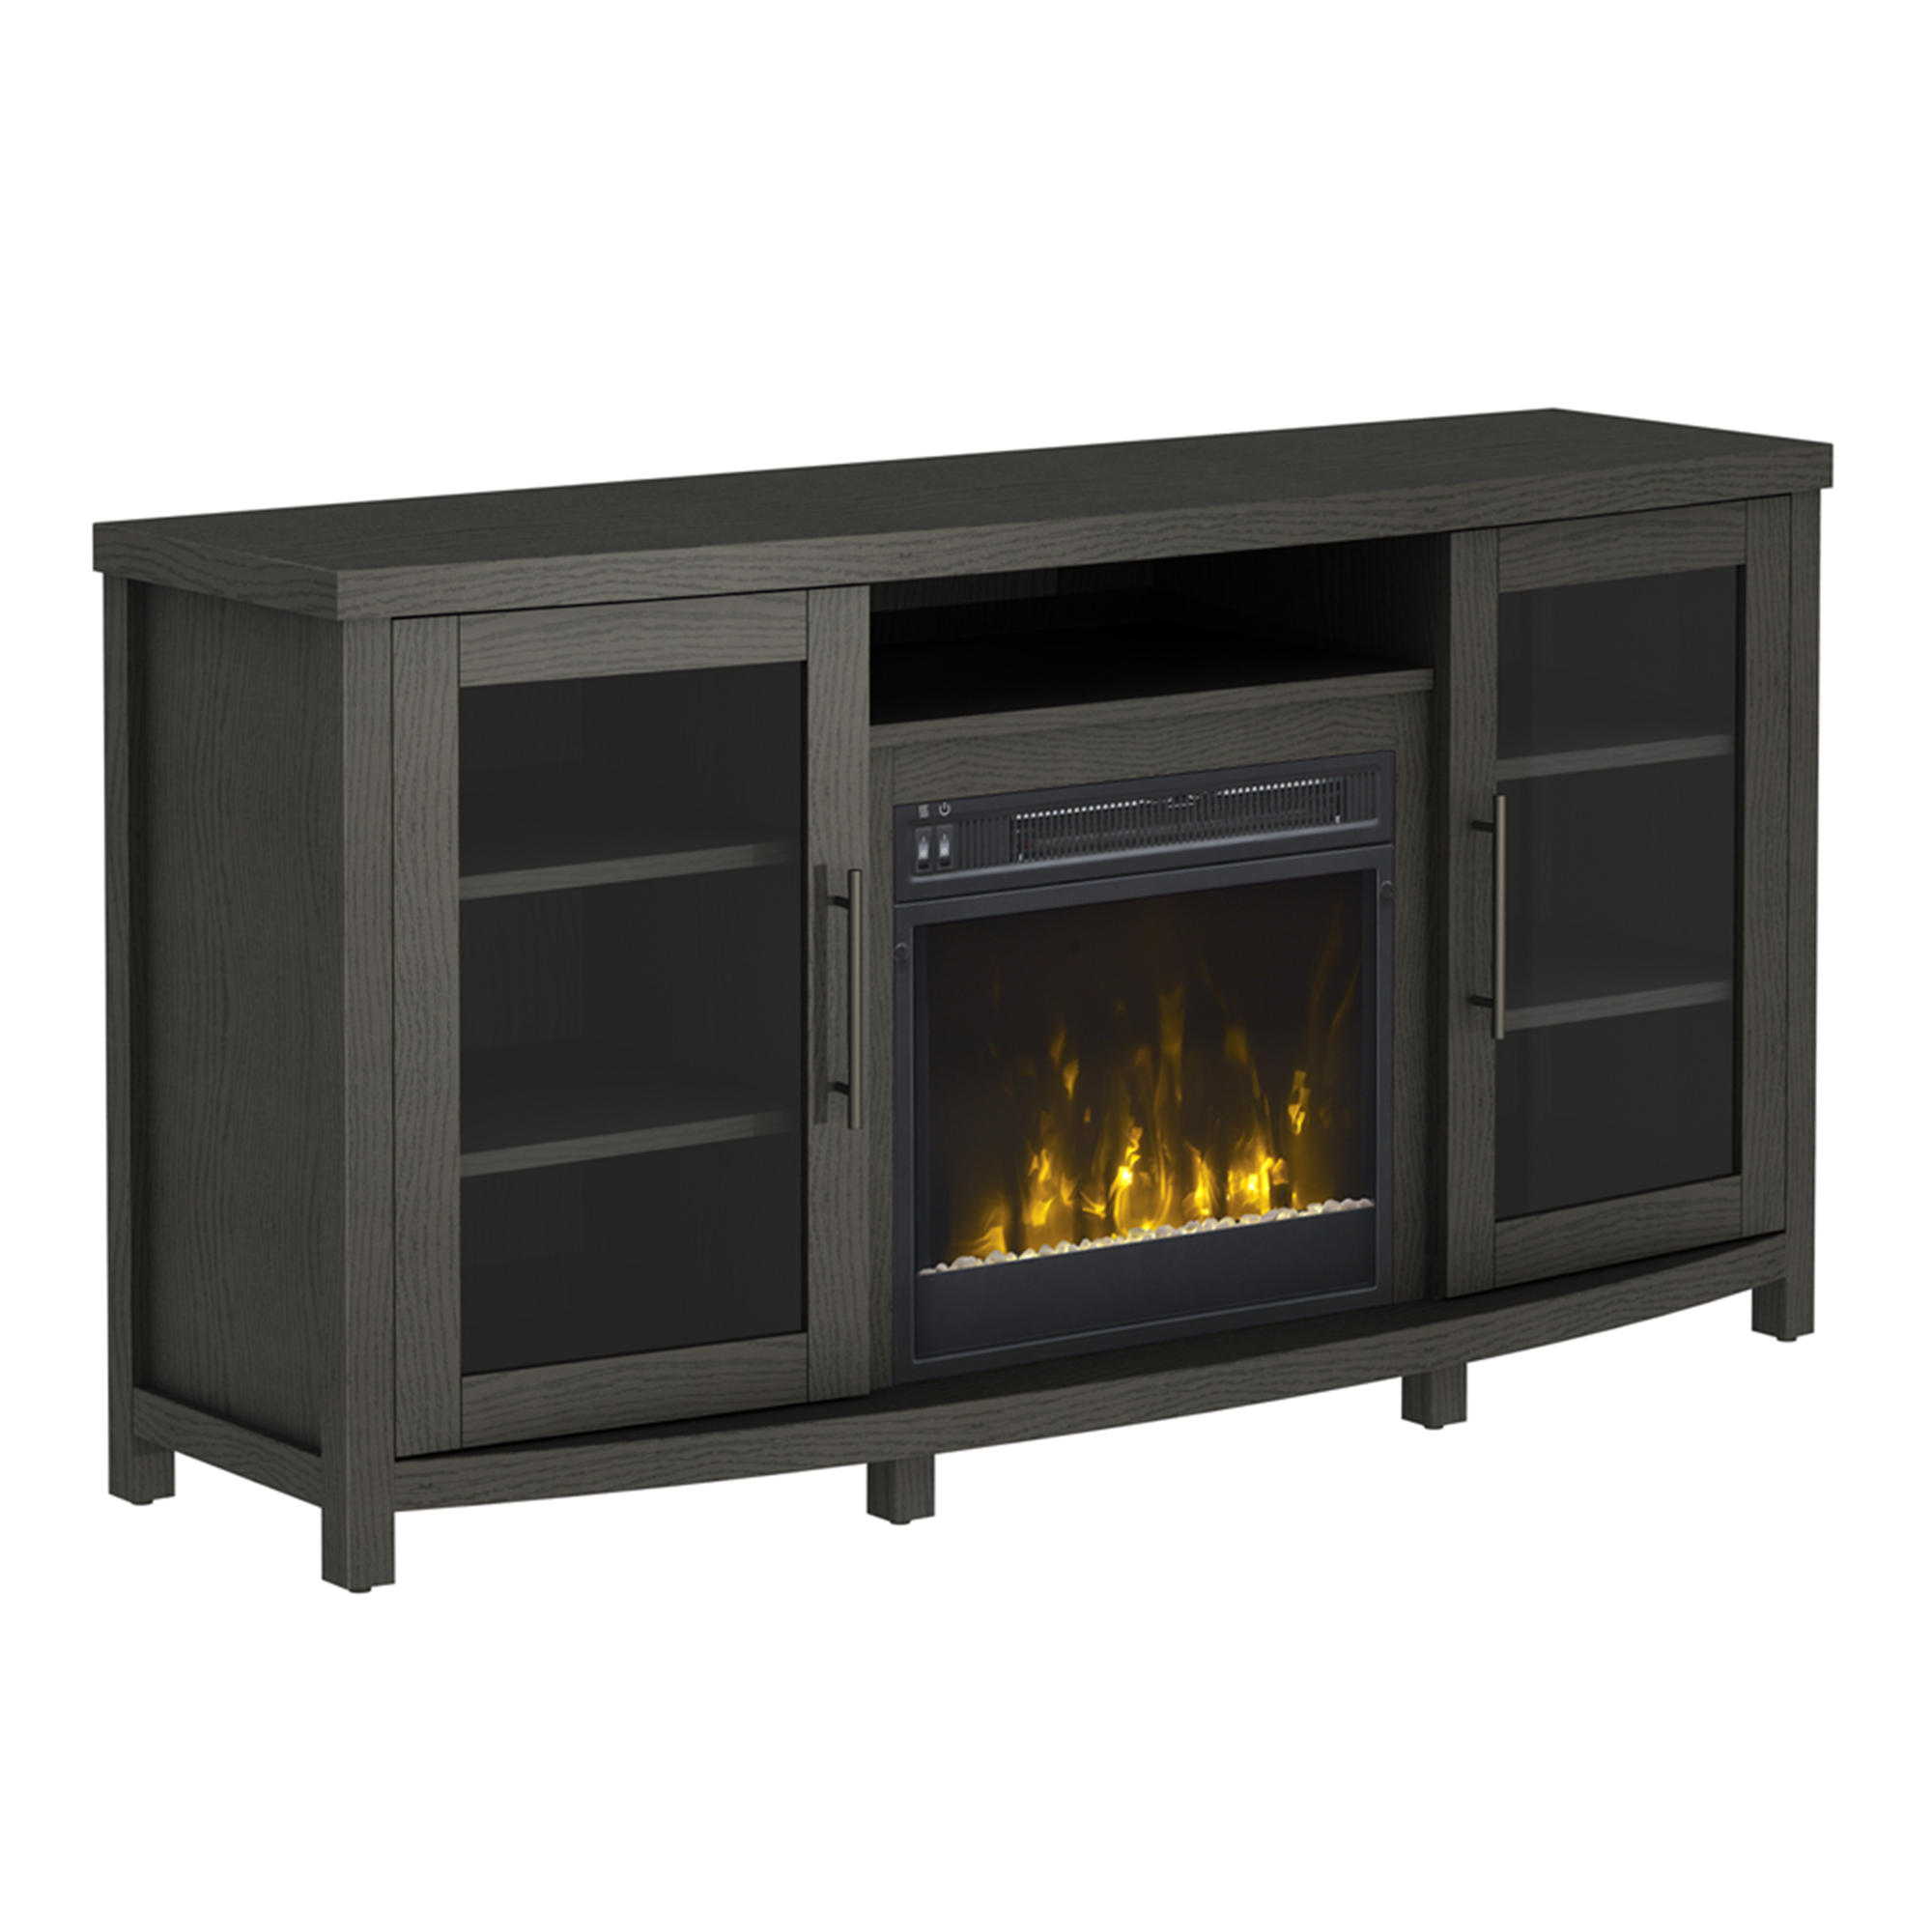 """Rossville Tv Stand For Tvs Up To 60 With Electric Fireplace In Millen Tv Stands For Tvs Up To 60"""" (View 9 of 20)"""